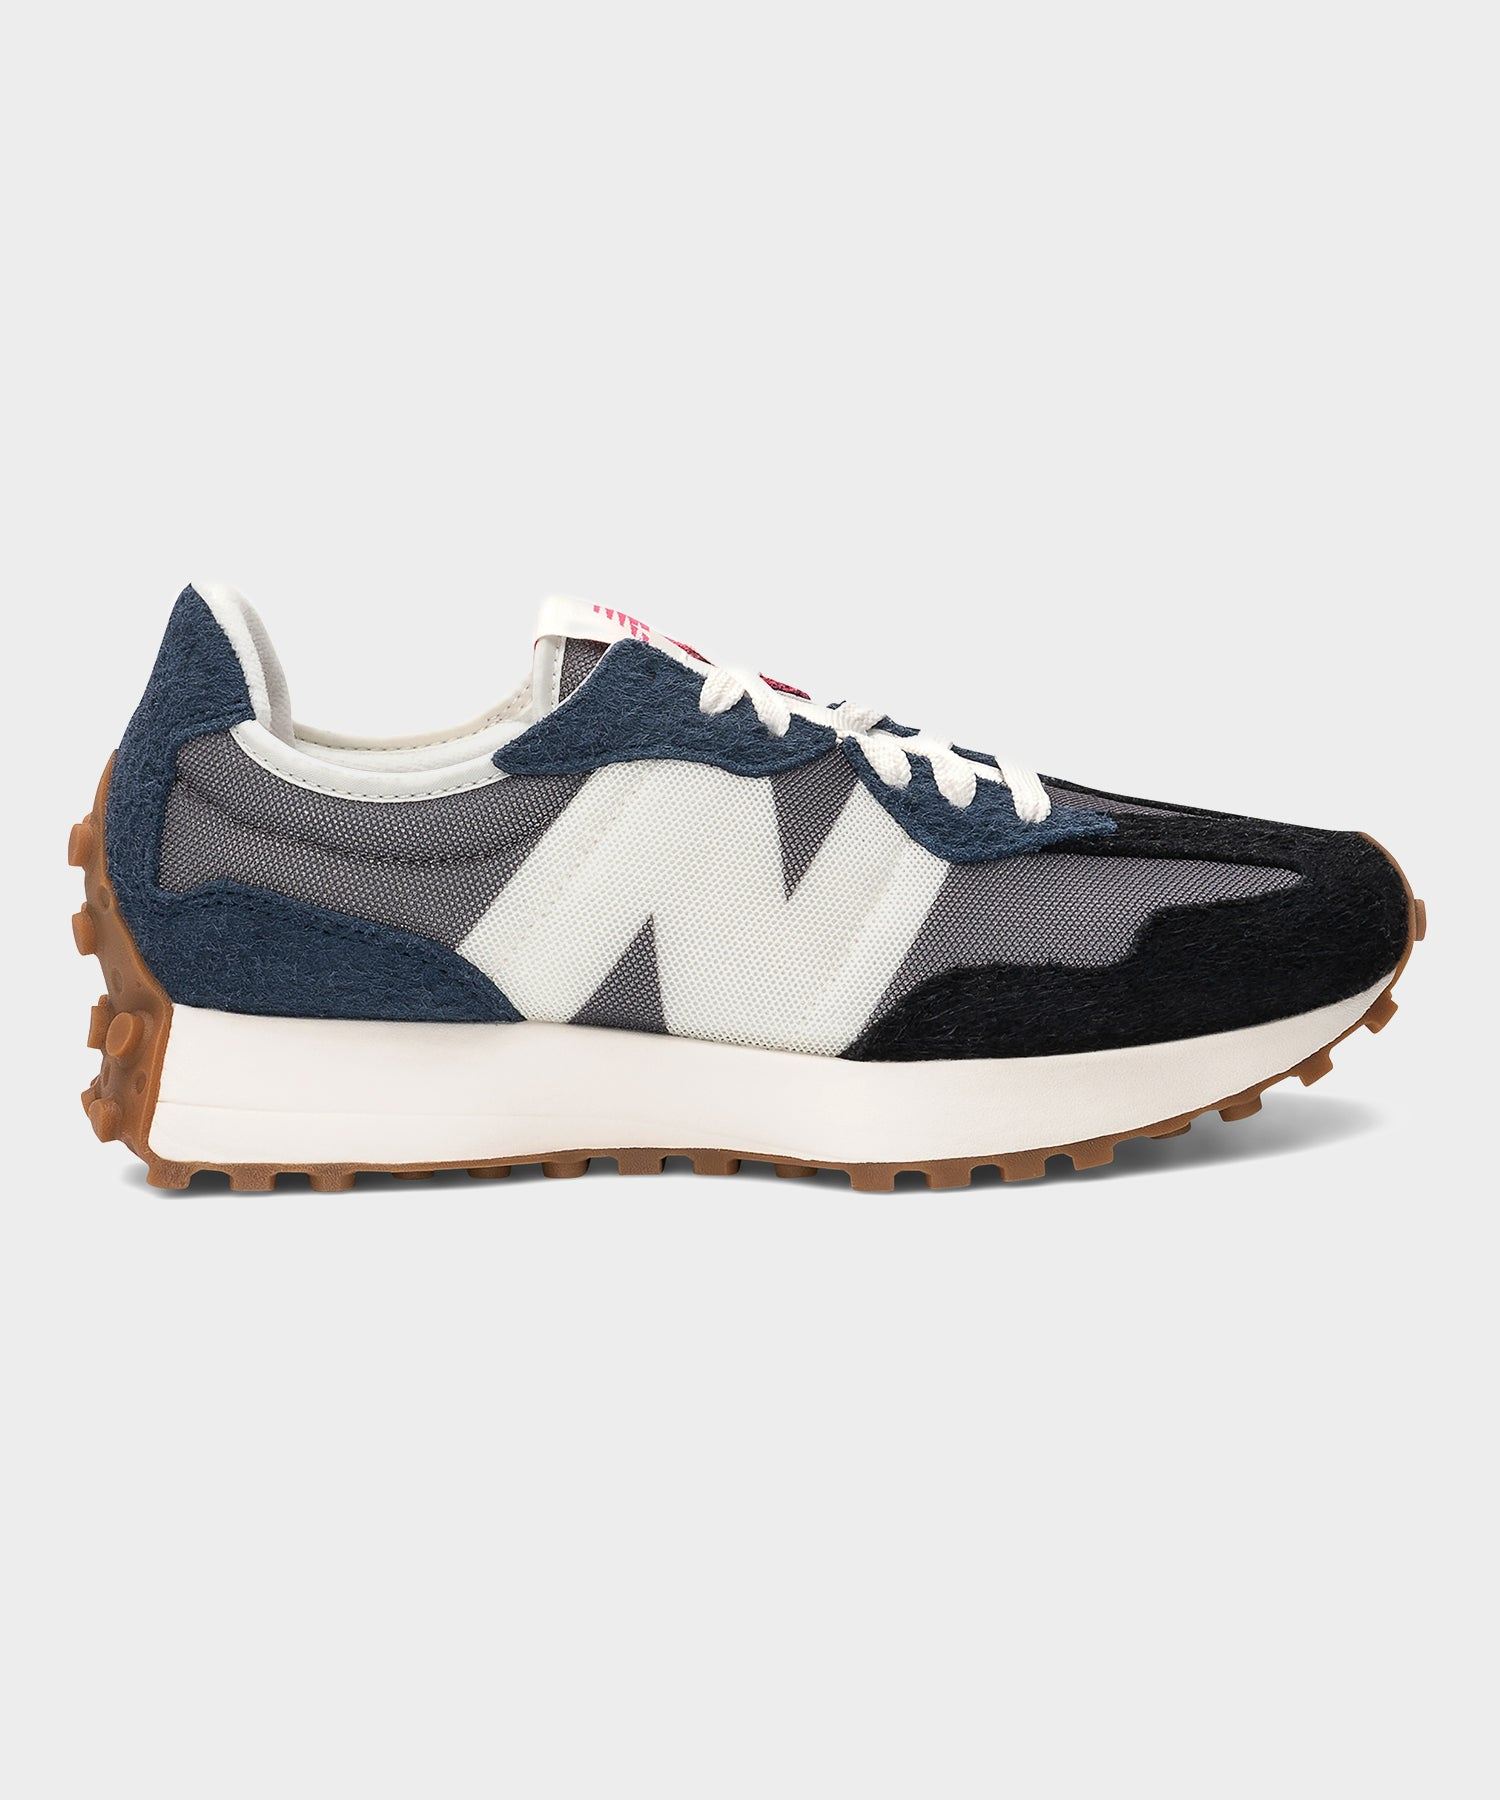 New Balance 327 in Navy